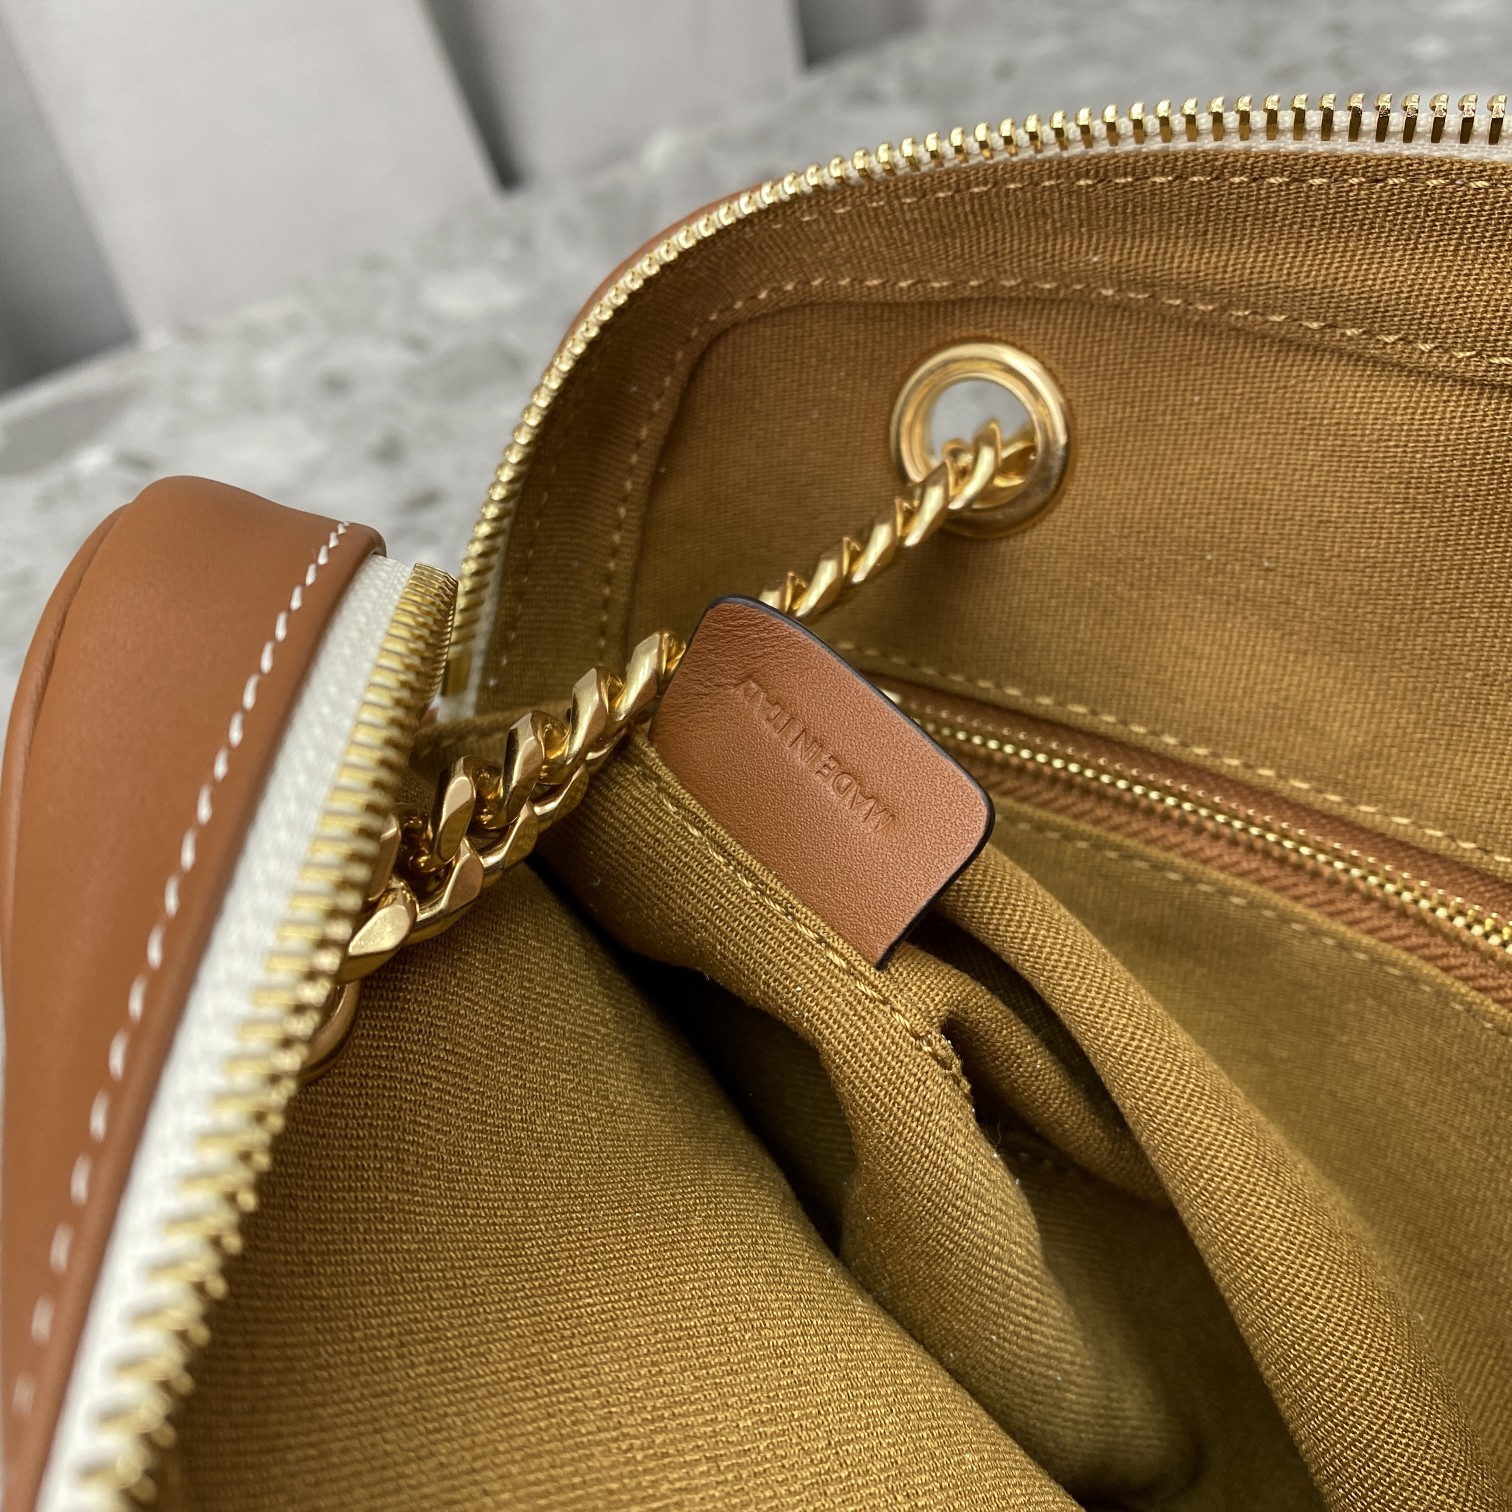 Replica Celine Small Patapans Bag In Triomphe Canvas And Calfskin White